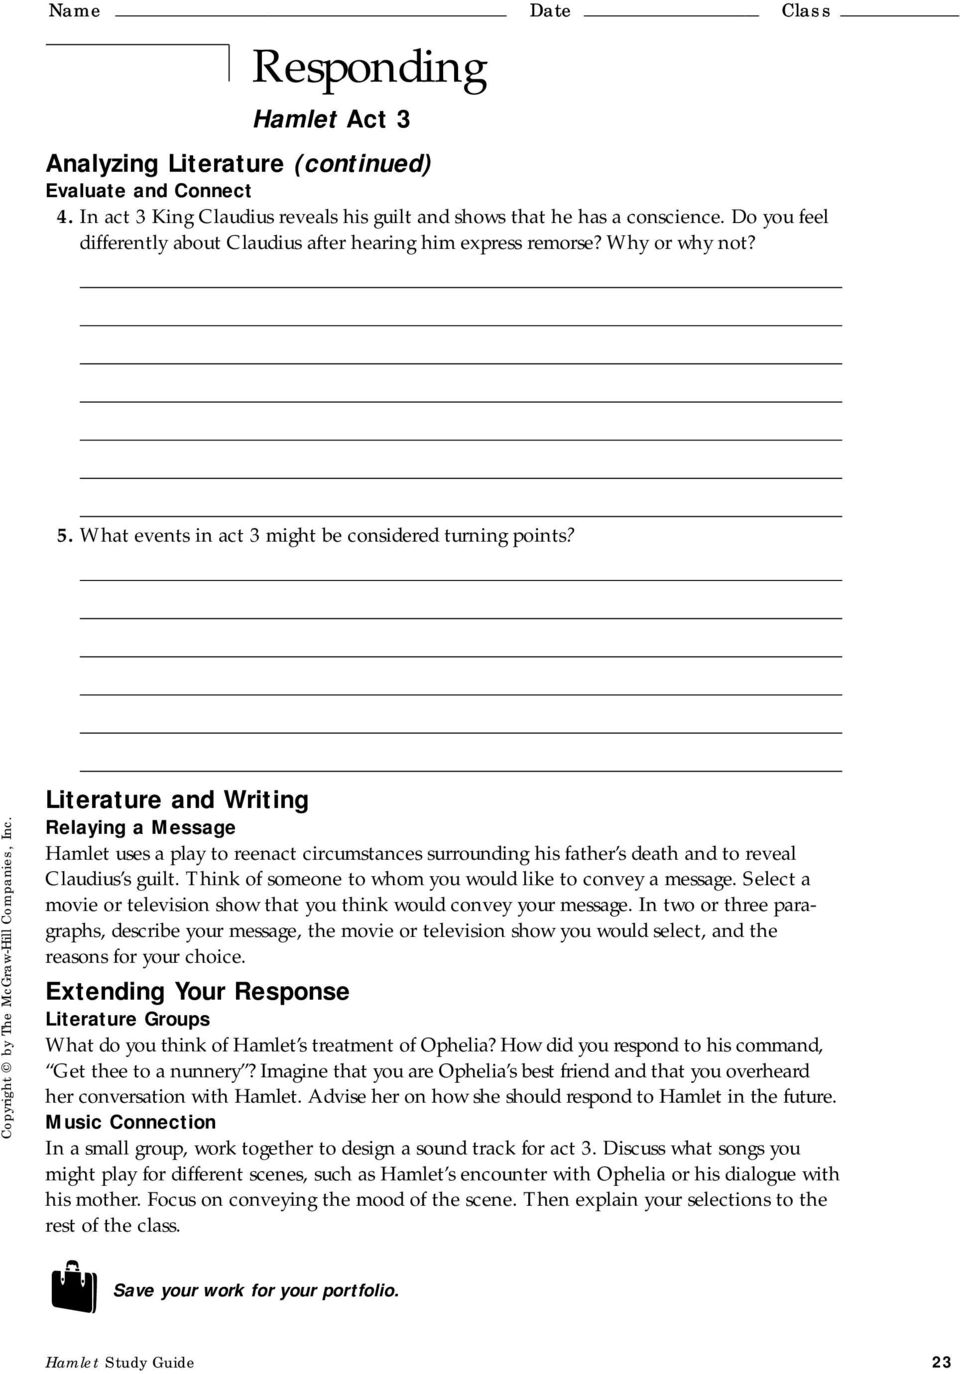 T He G Lencoe L Iterature L Ibrary Study Guide For Hamlet By William Shakespeare Pdf Free Download [ 1374 x 960 Pixel ]